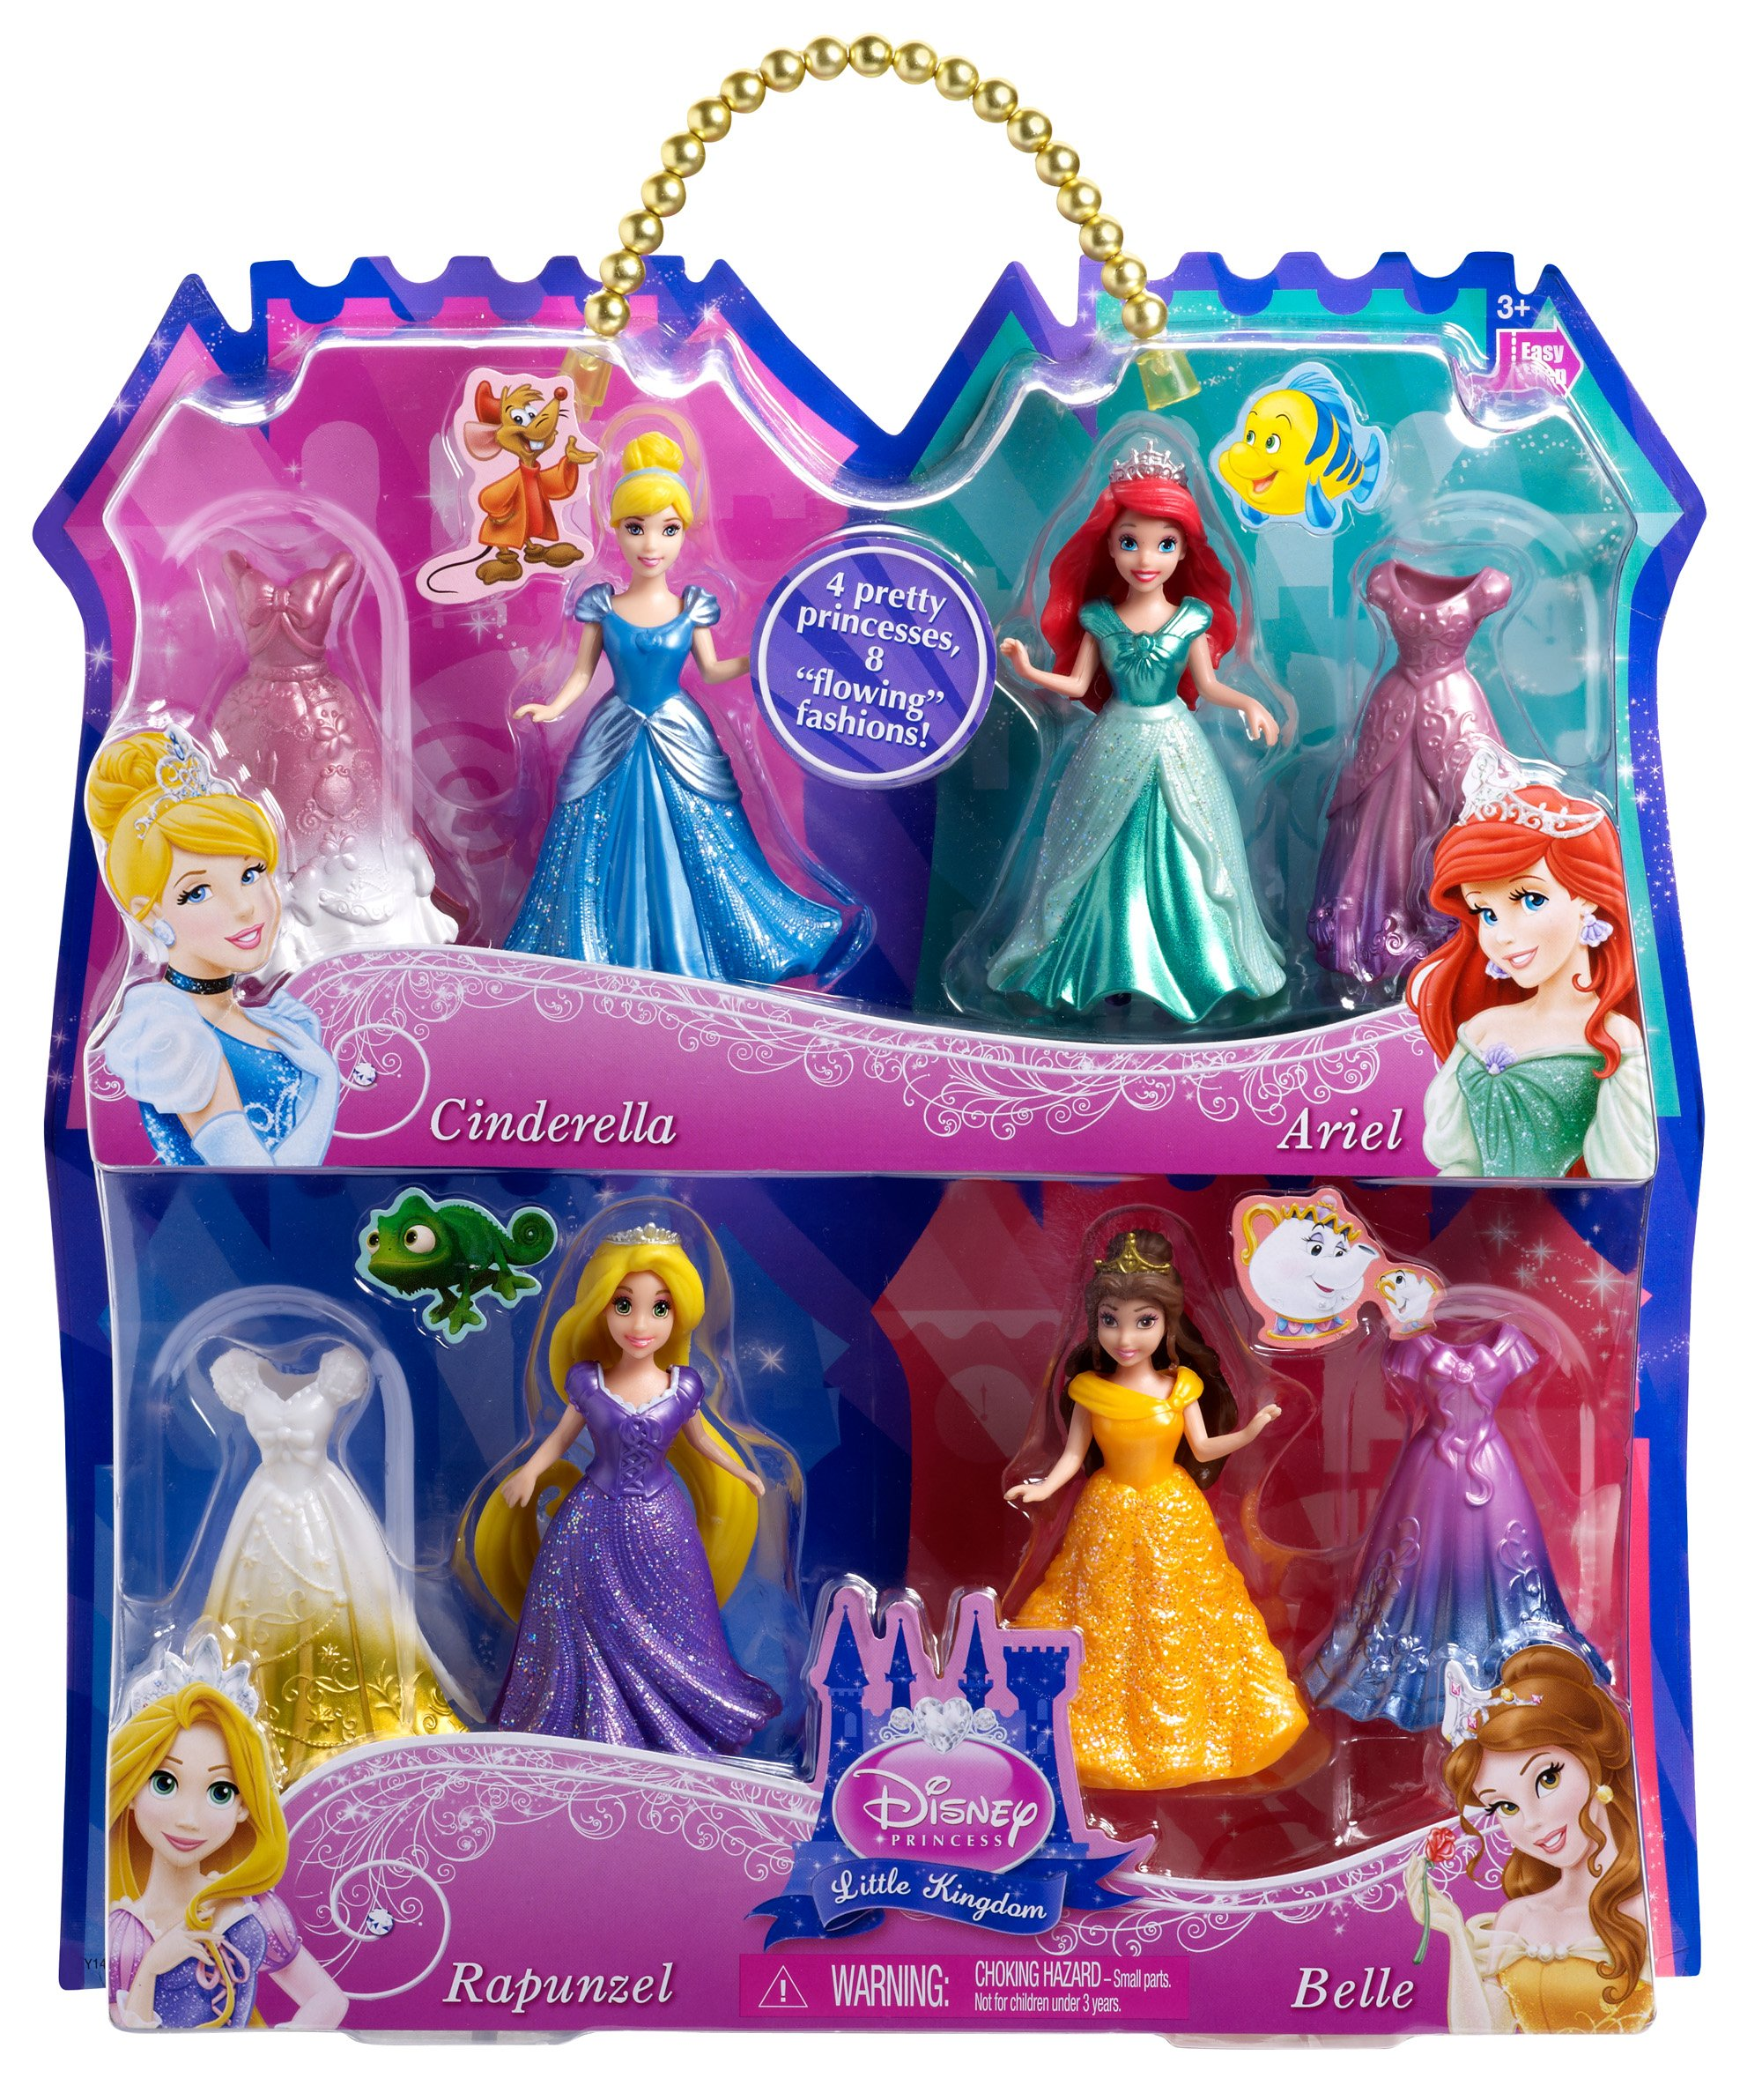 Amazon price history for Disney Princess Magiclip 4-Pack Giftset